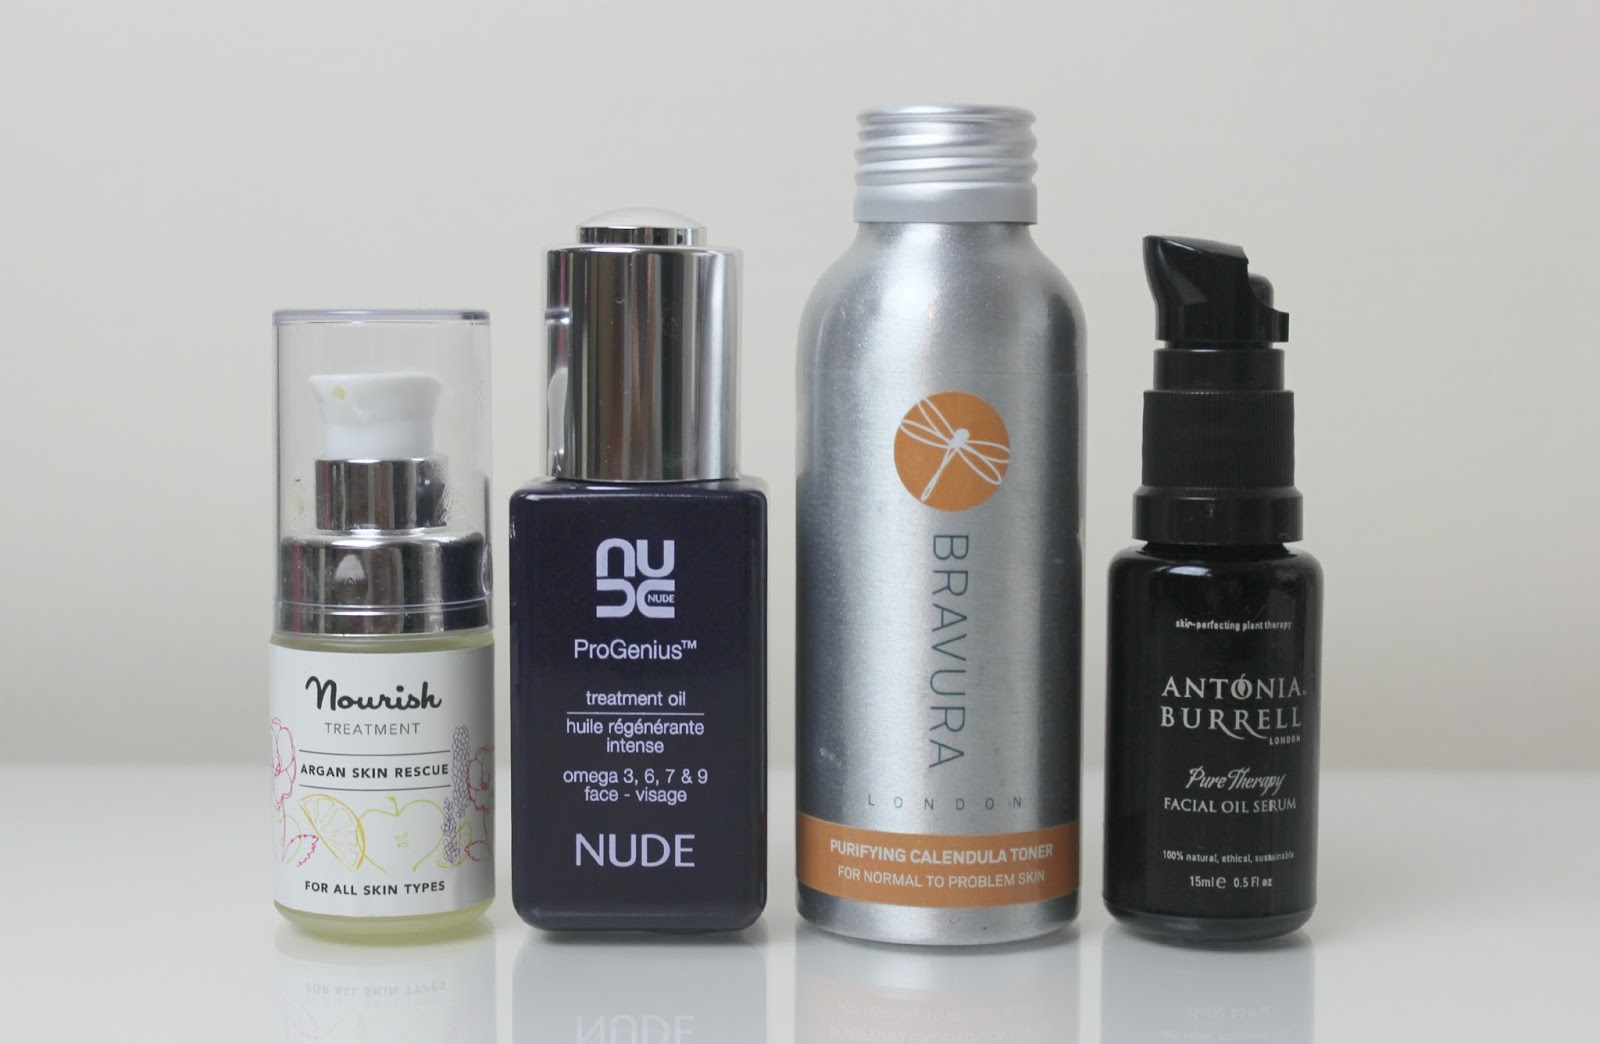 A picture of Nourish Argan Skin Rescue, Nude ProGenuis Treatment Oil, Bravura Purifying Calendula Toner and Antonia Burrell Pure Therapy Facial Oil Serum